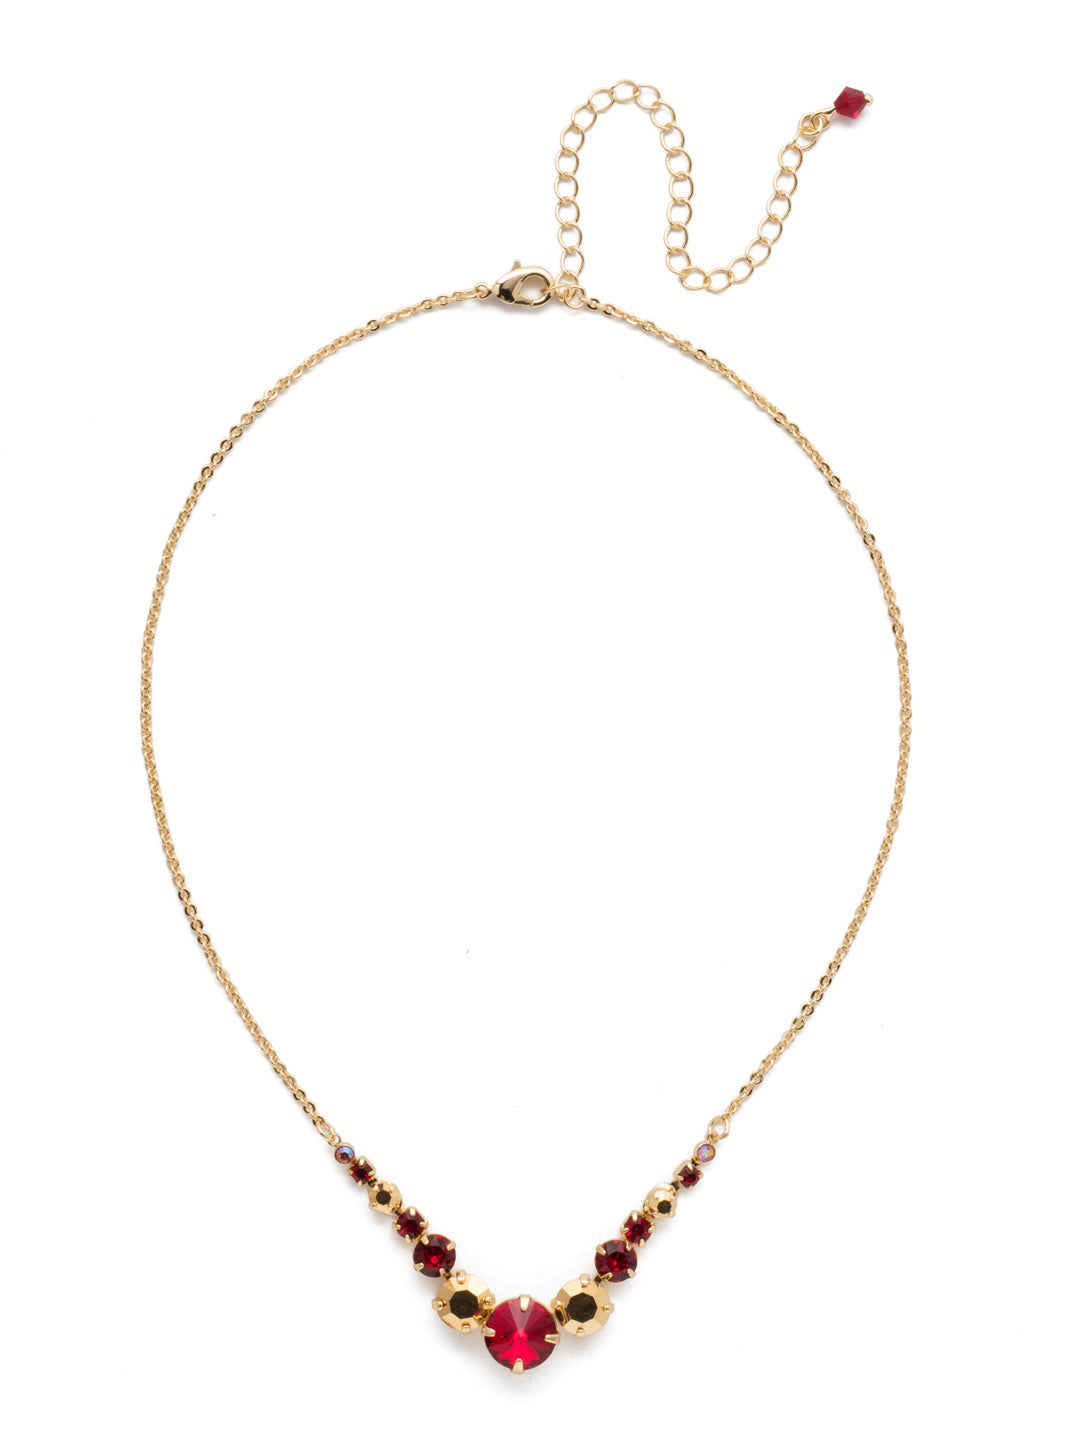 Delicate Round Tennis Necklace - NCQ14BGGGA